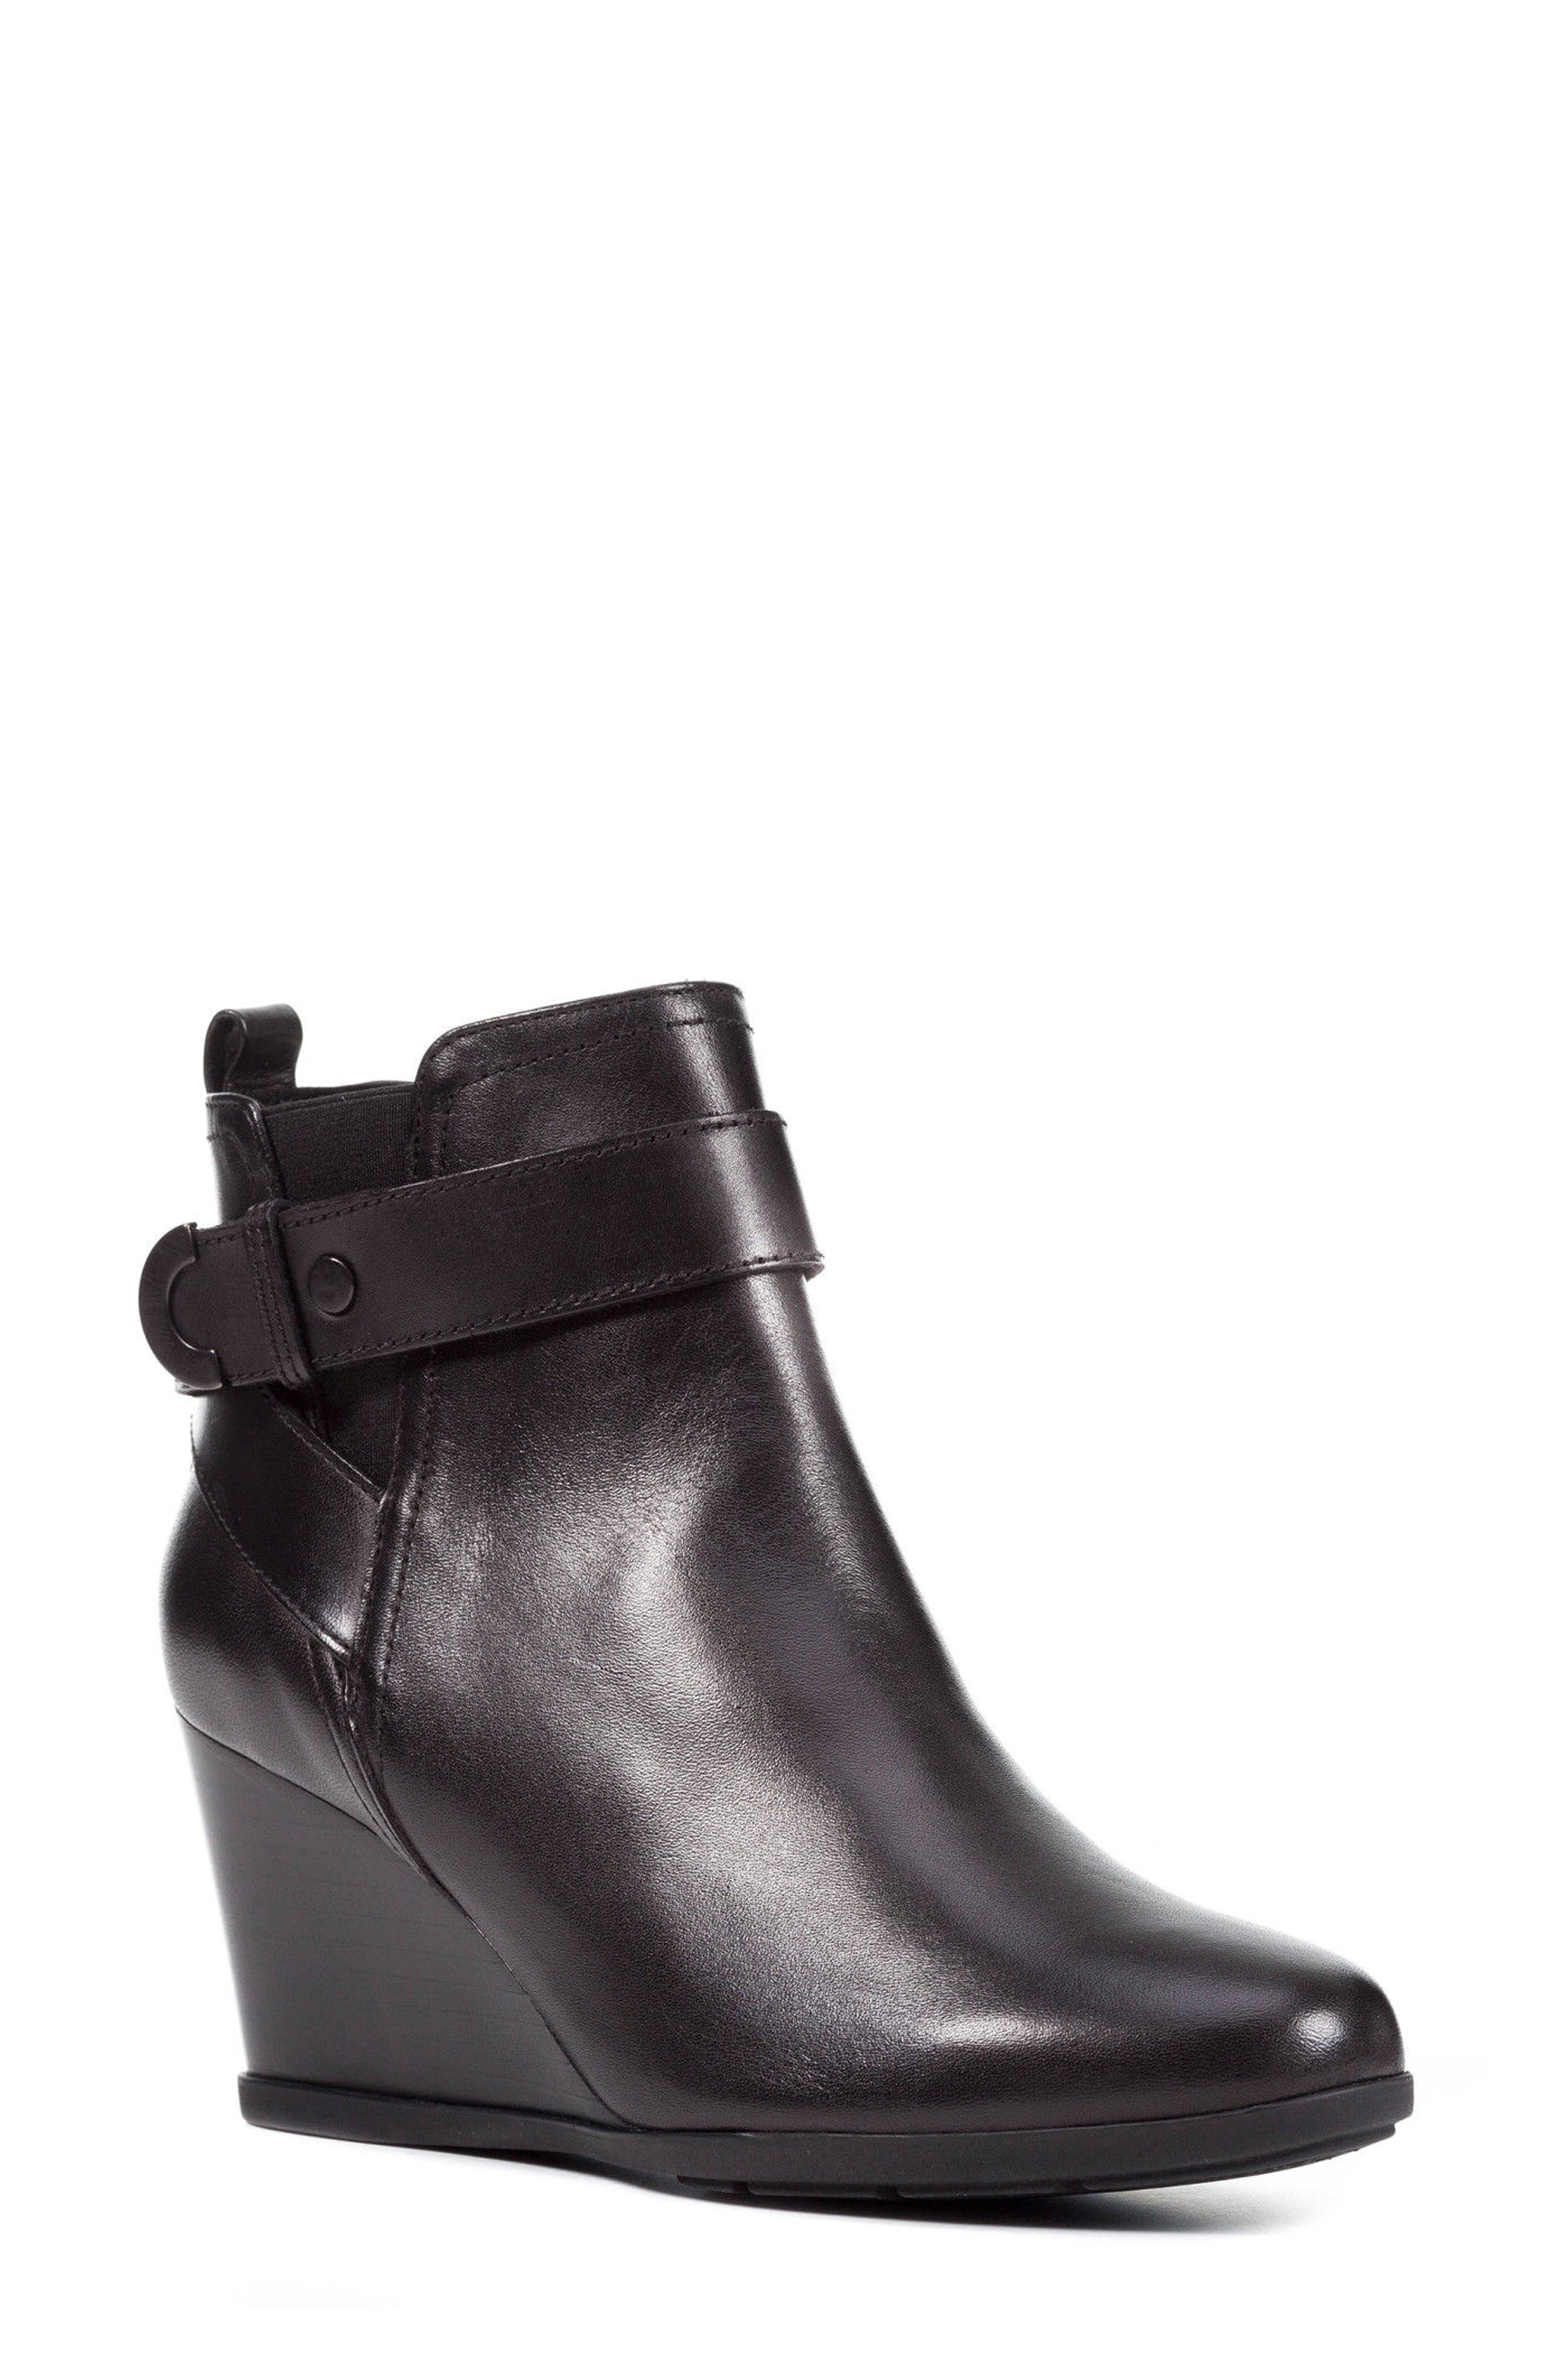 Inspiration Buckle Wedge Bootie,                             Main thumbnail 1, color,                             001